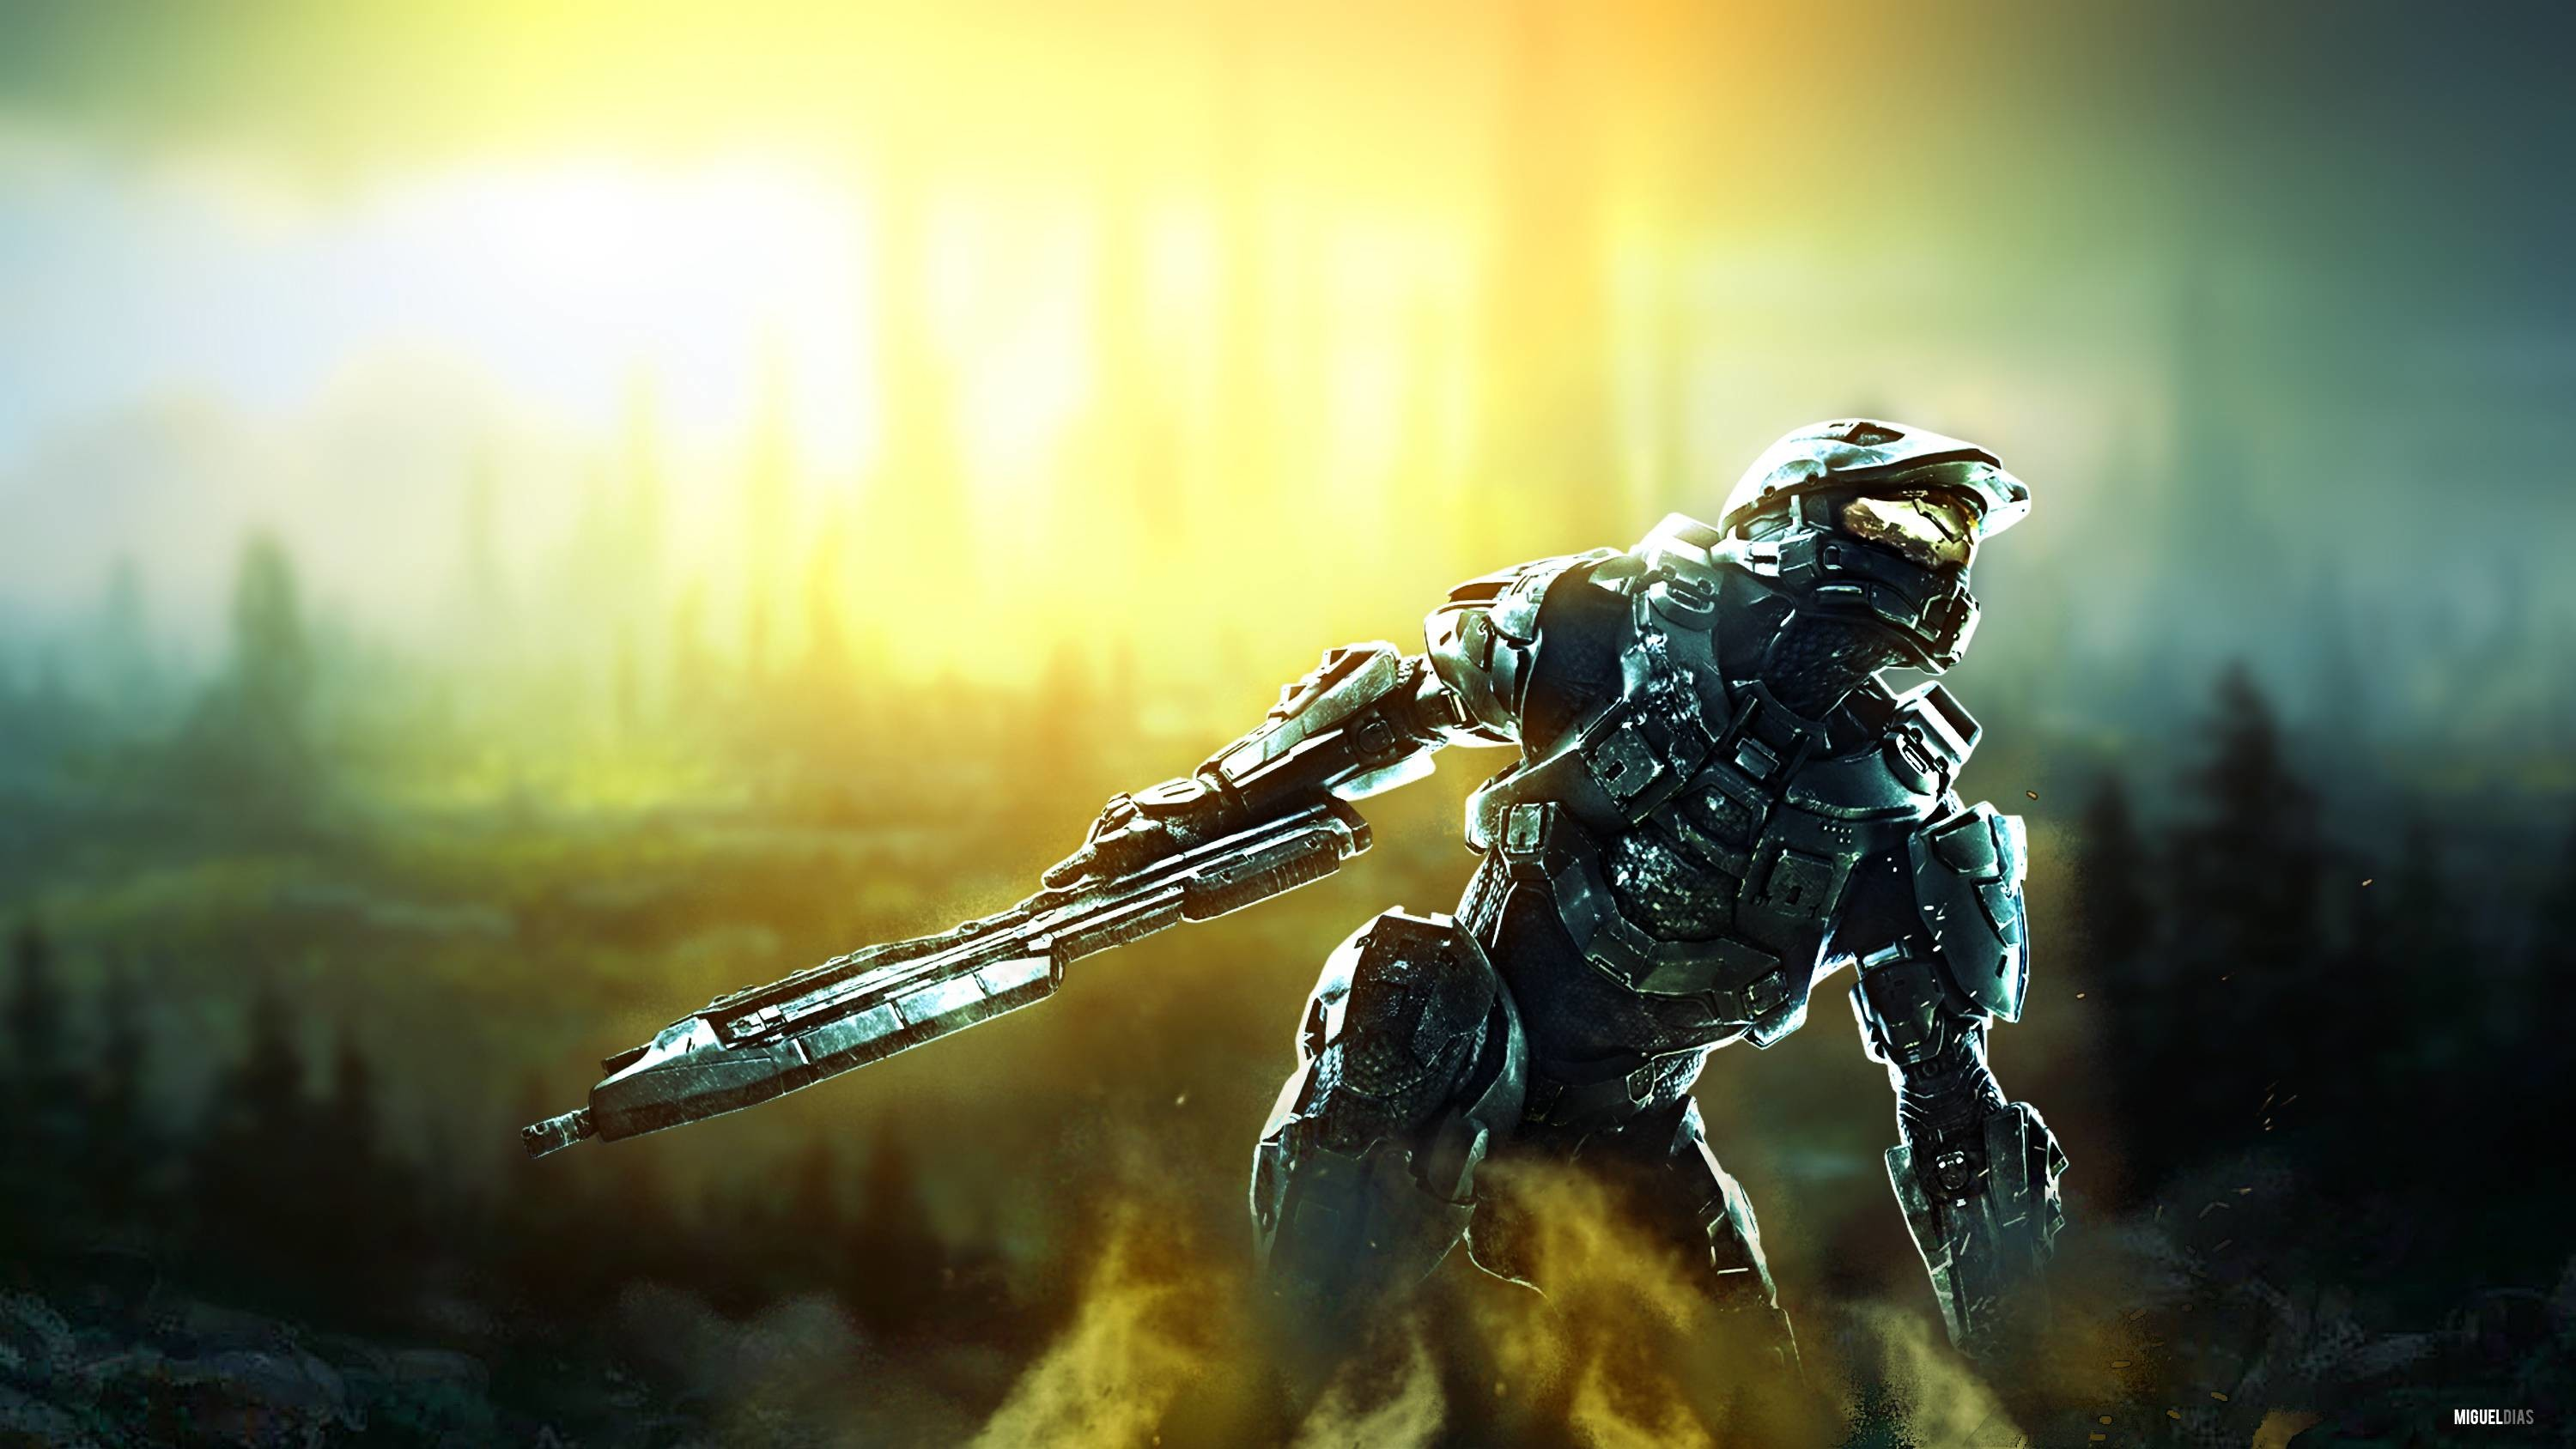 3000x1688 I made a high-res Halo wallpaper.